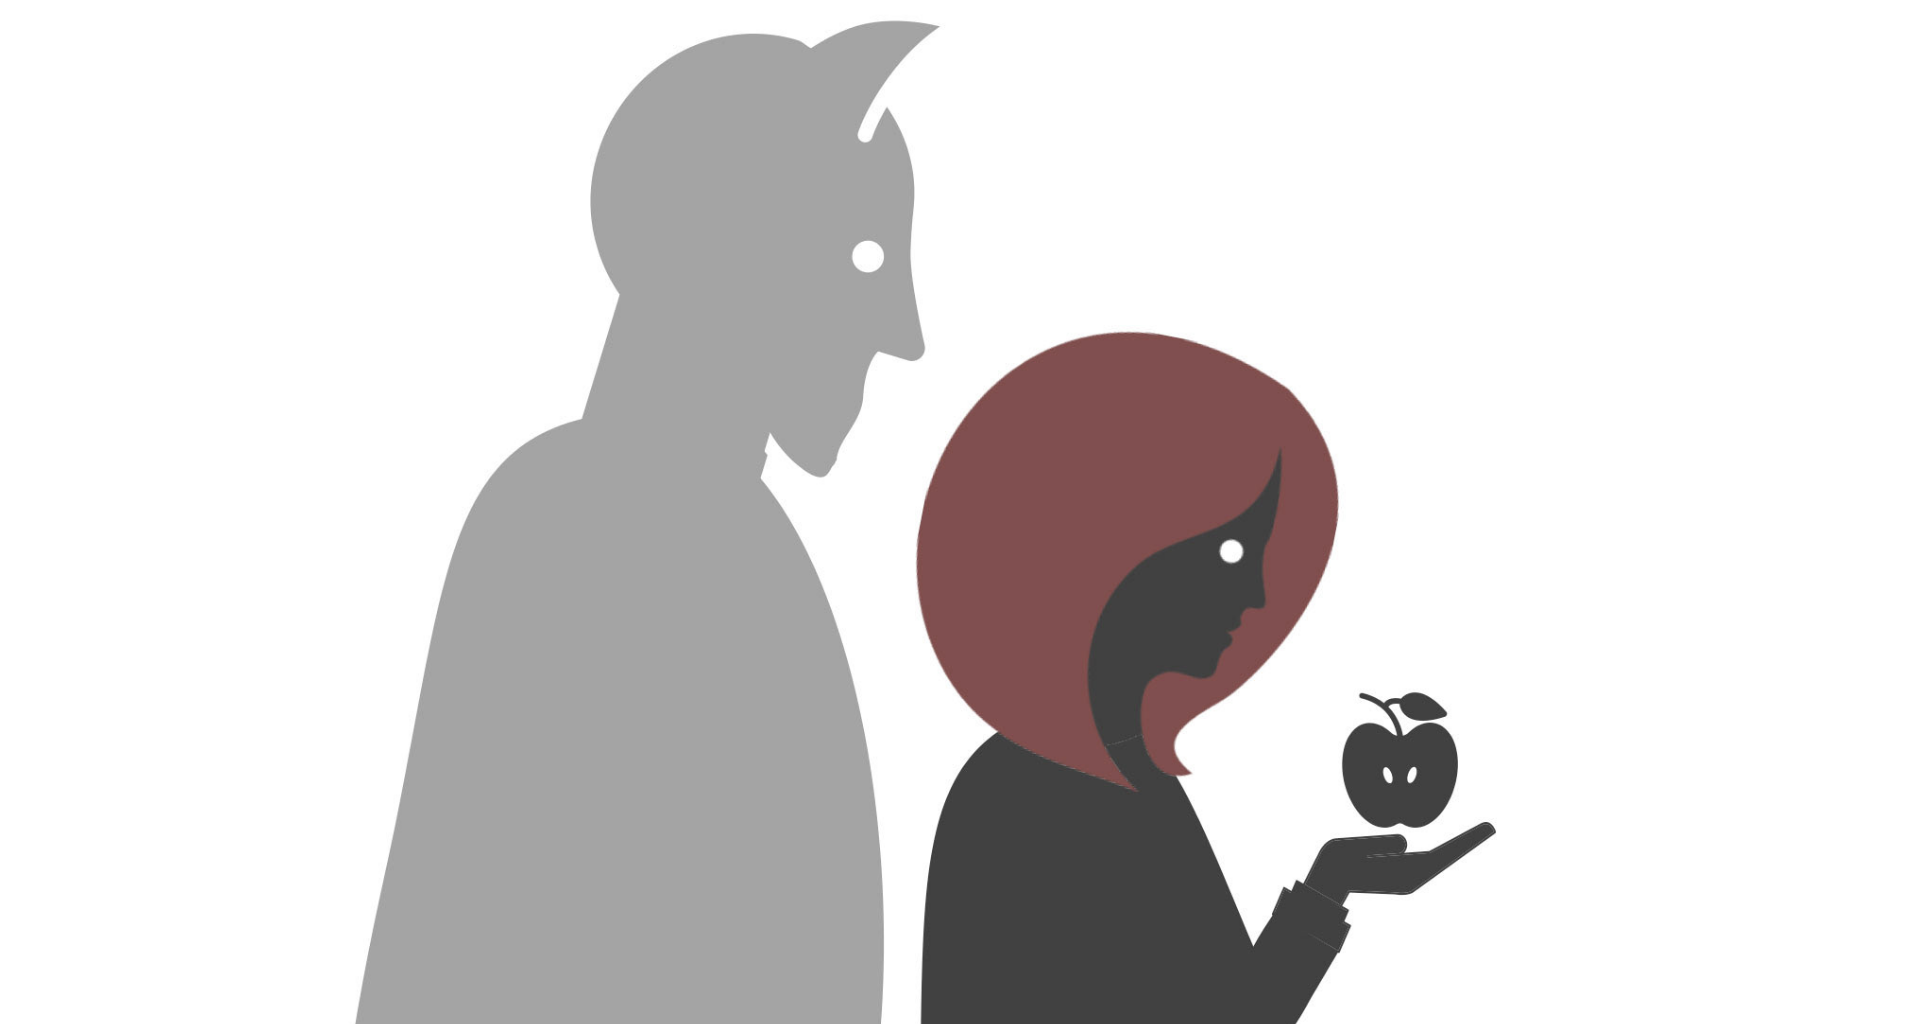 Image of a devil standing behind a woman who is looking at the apple she is holding